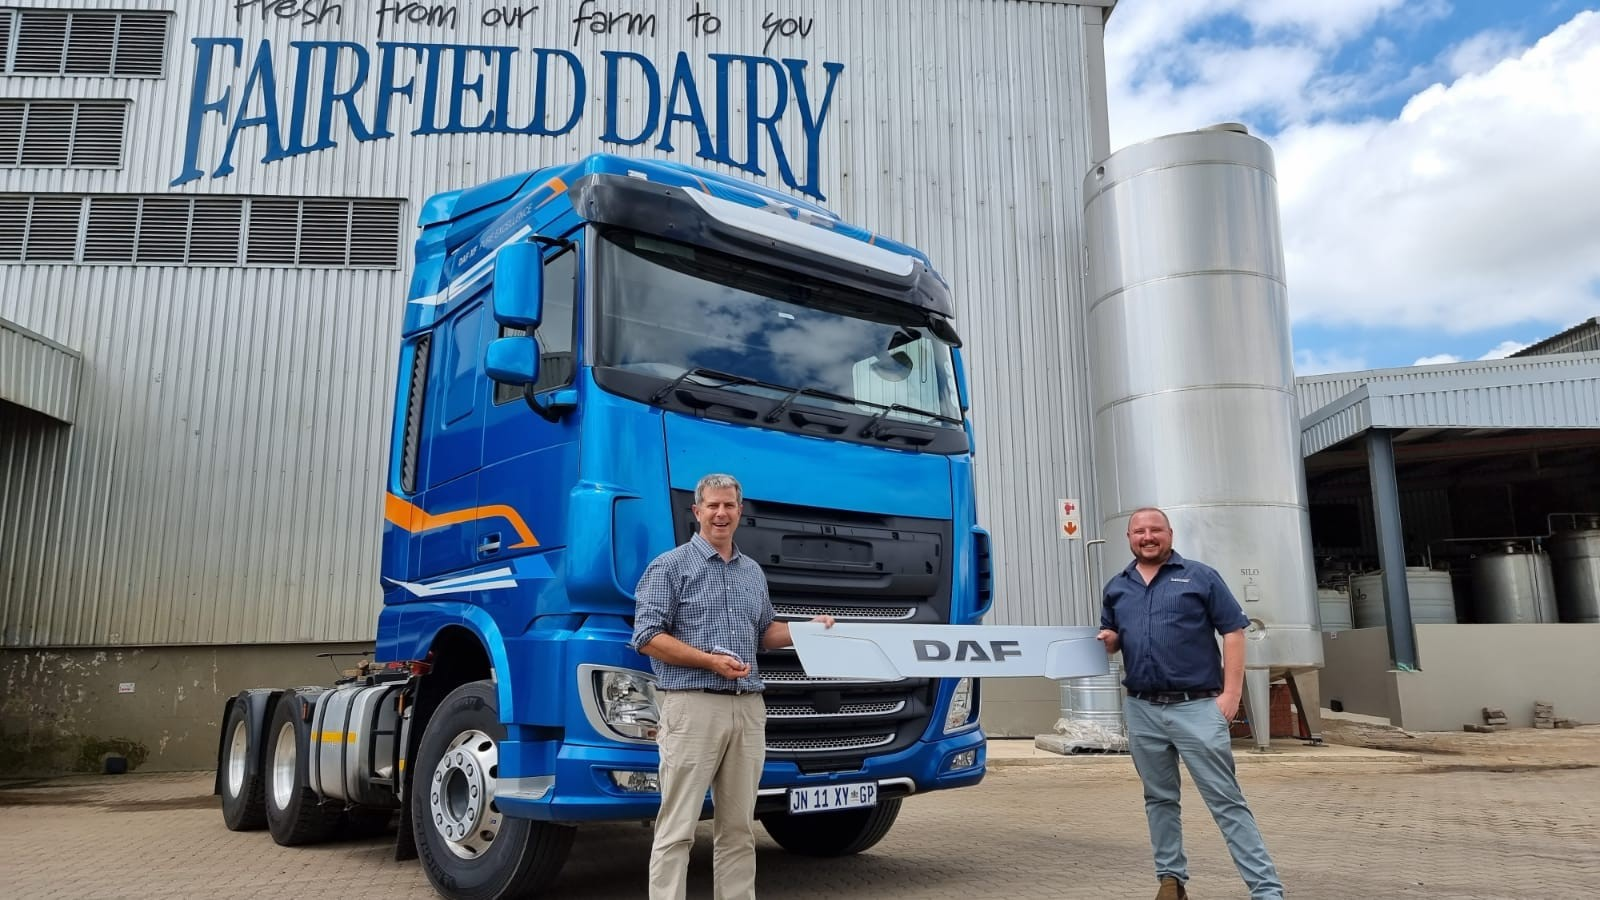 David Street, MD of Fairfield Longhaul, says that DAF's excellent reliability and fuel efficiency, as well as Fairfield's exceptional relationship with the Babcock sales and after-sales support teams, are some of the motivating factors for its continued support of the DAF brand.